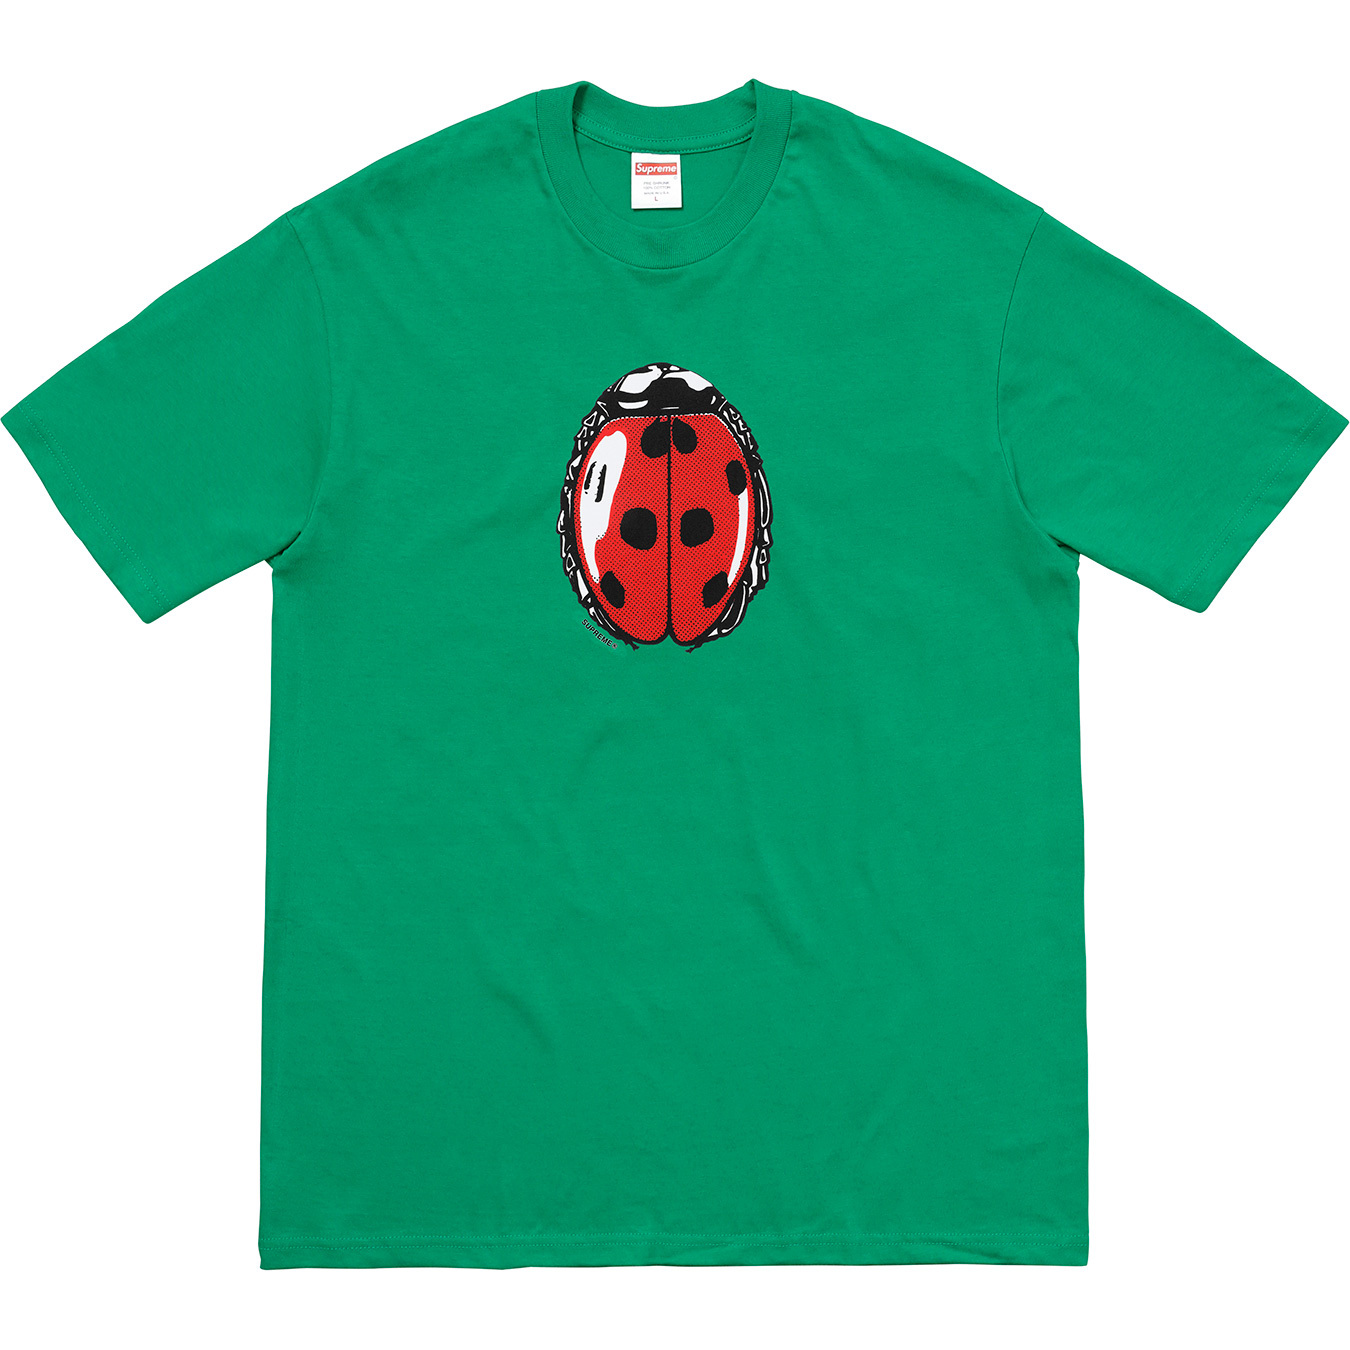 supreme-18ss-spring-summer-lady-bug-tee